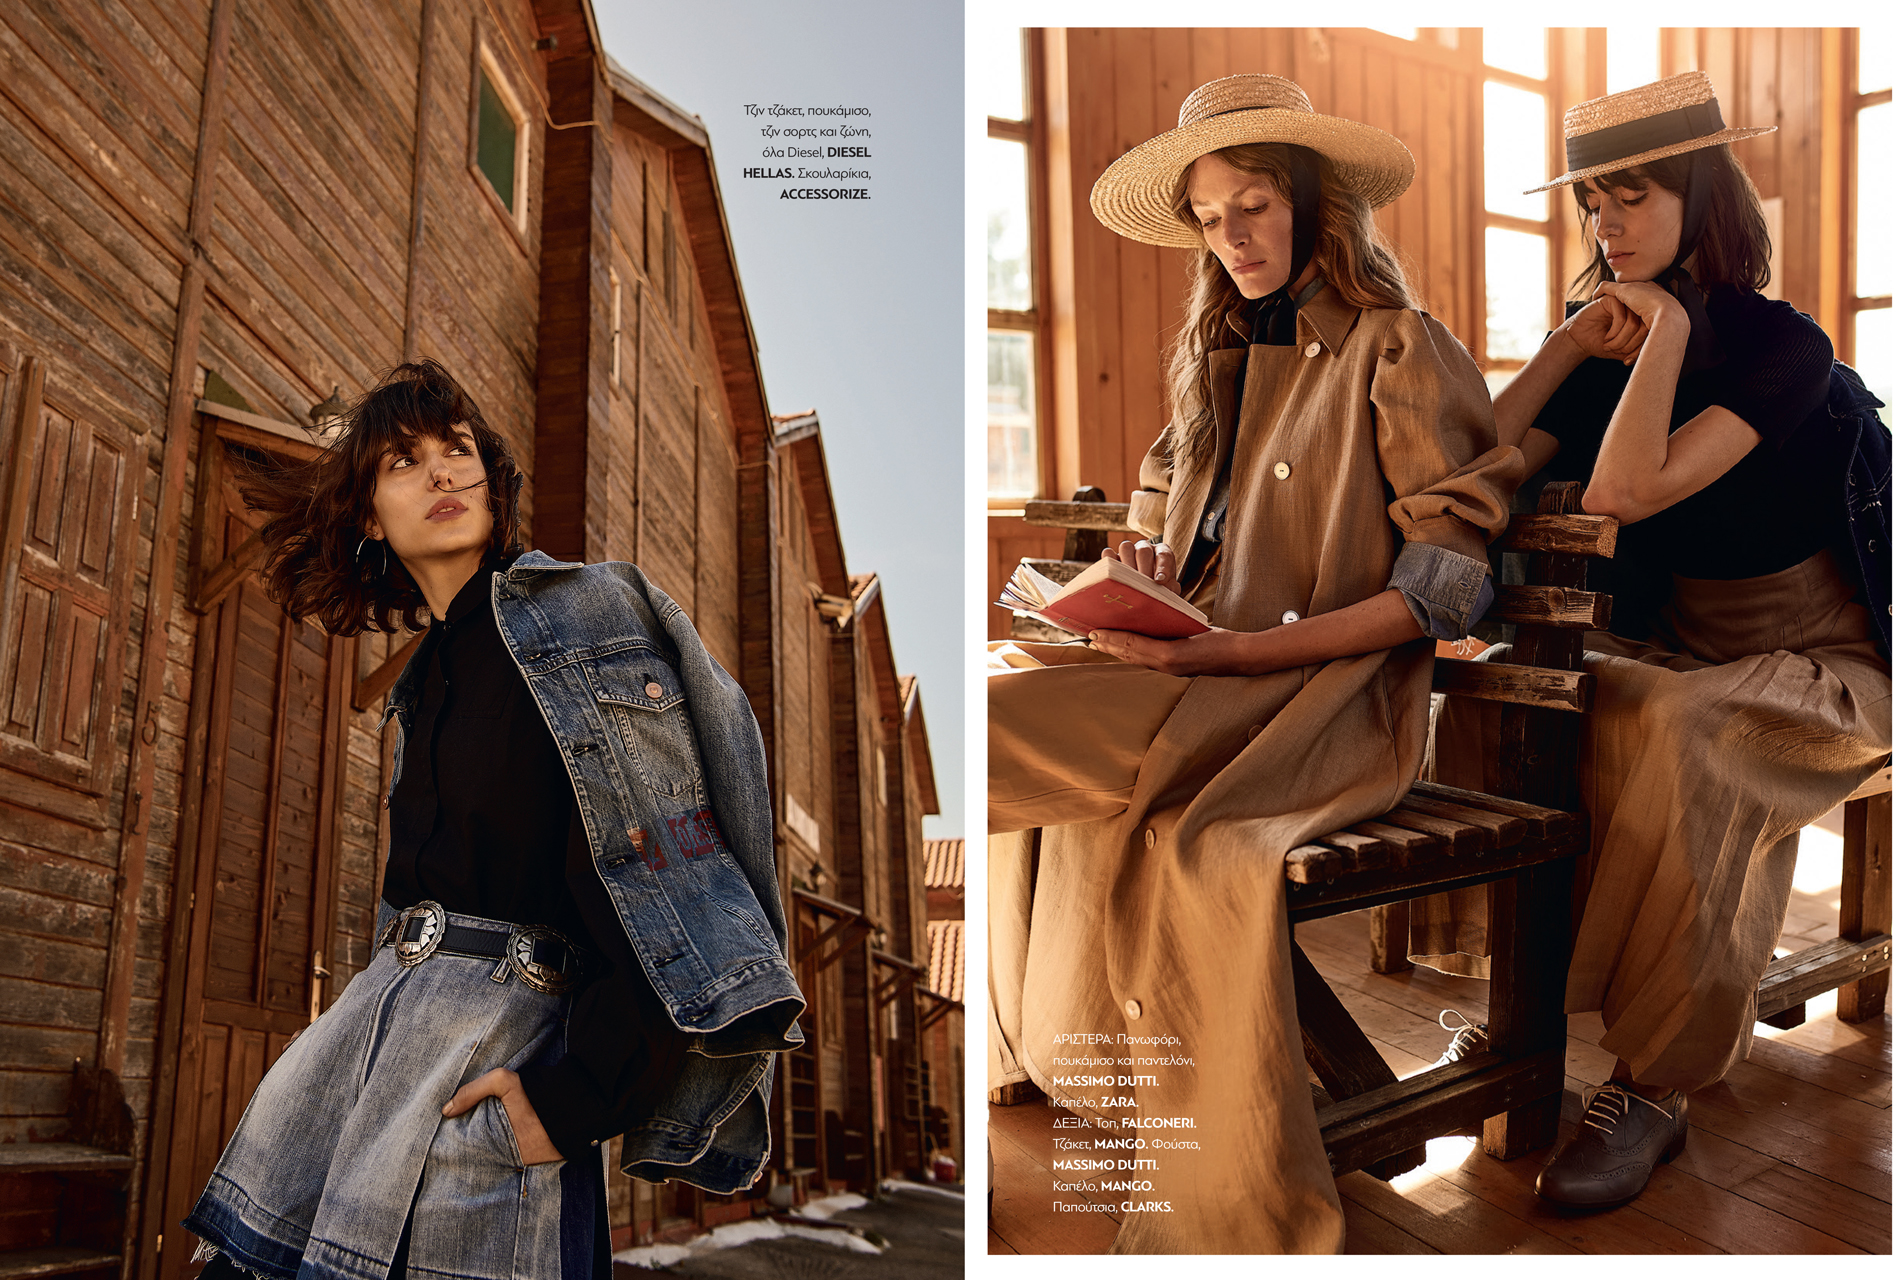 Beatriz Lucena and Theresa Schreck for Madame Figaro